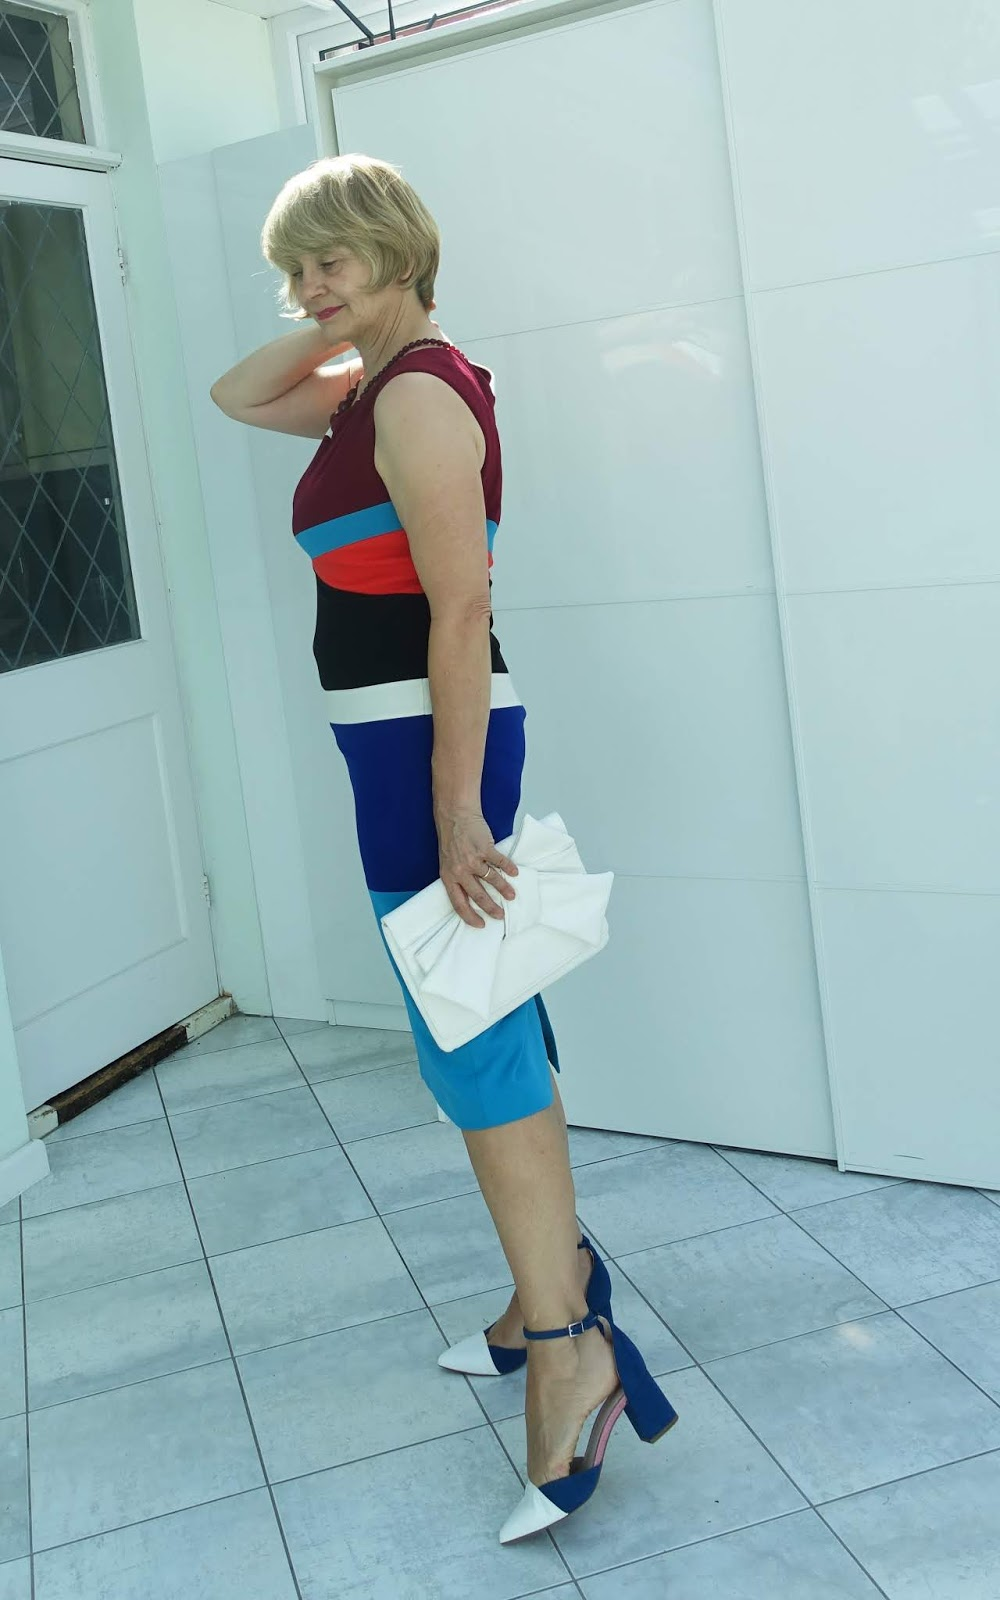 A colour block dress featuring teal, turquoise and burgundy from Anthropologie, worn with teal and white shoes and accessorized with a white clutch bag and burgundy necklace.